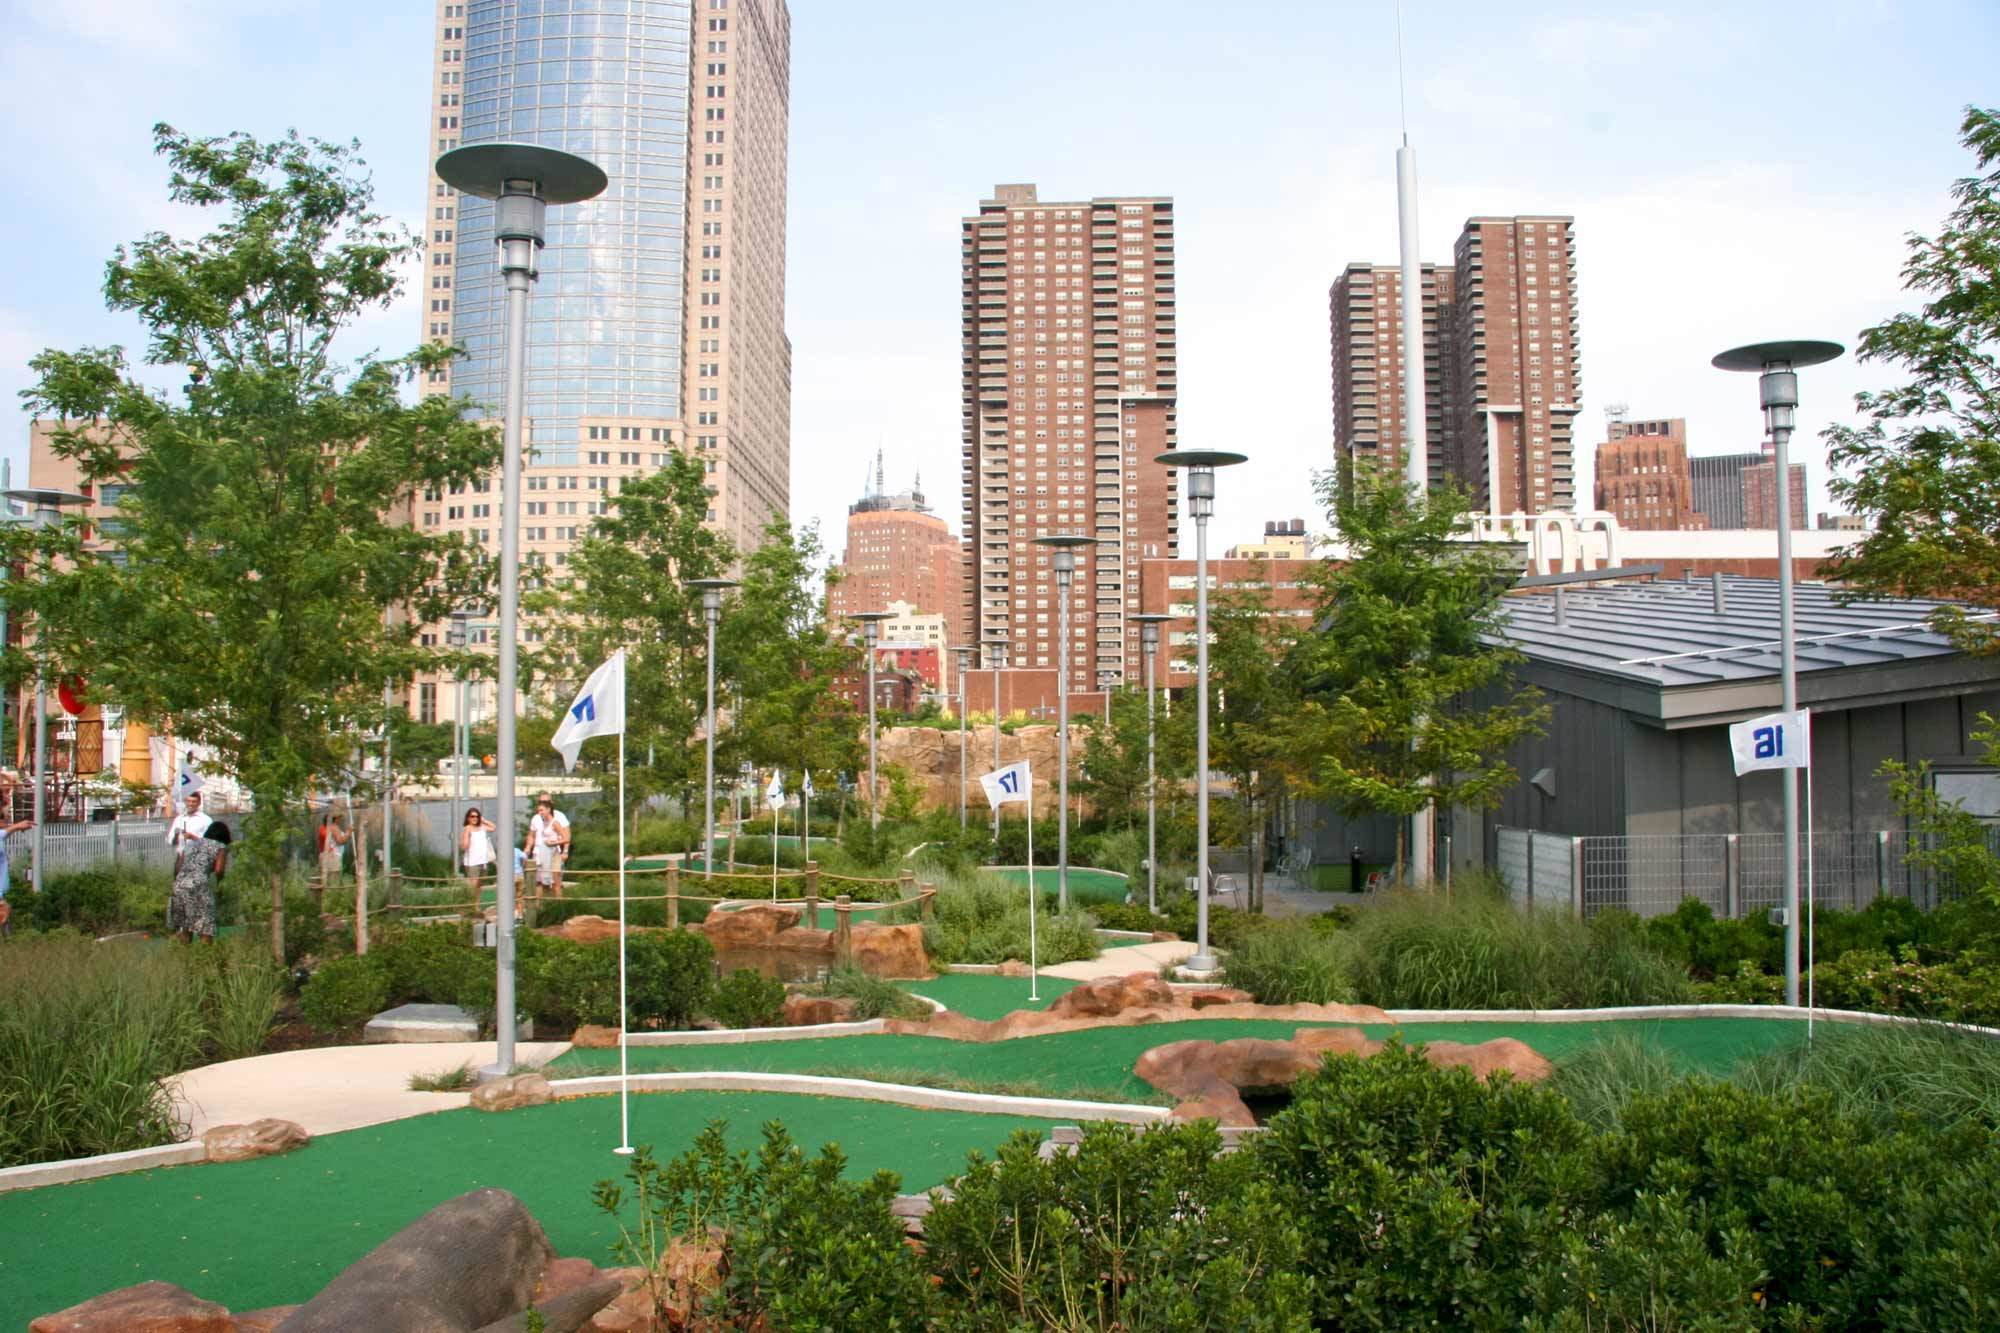 Fore! It's time for a game or two of mini golf, NYC!